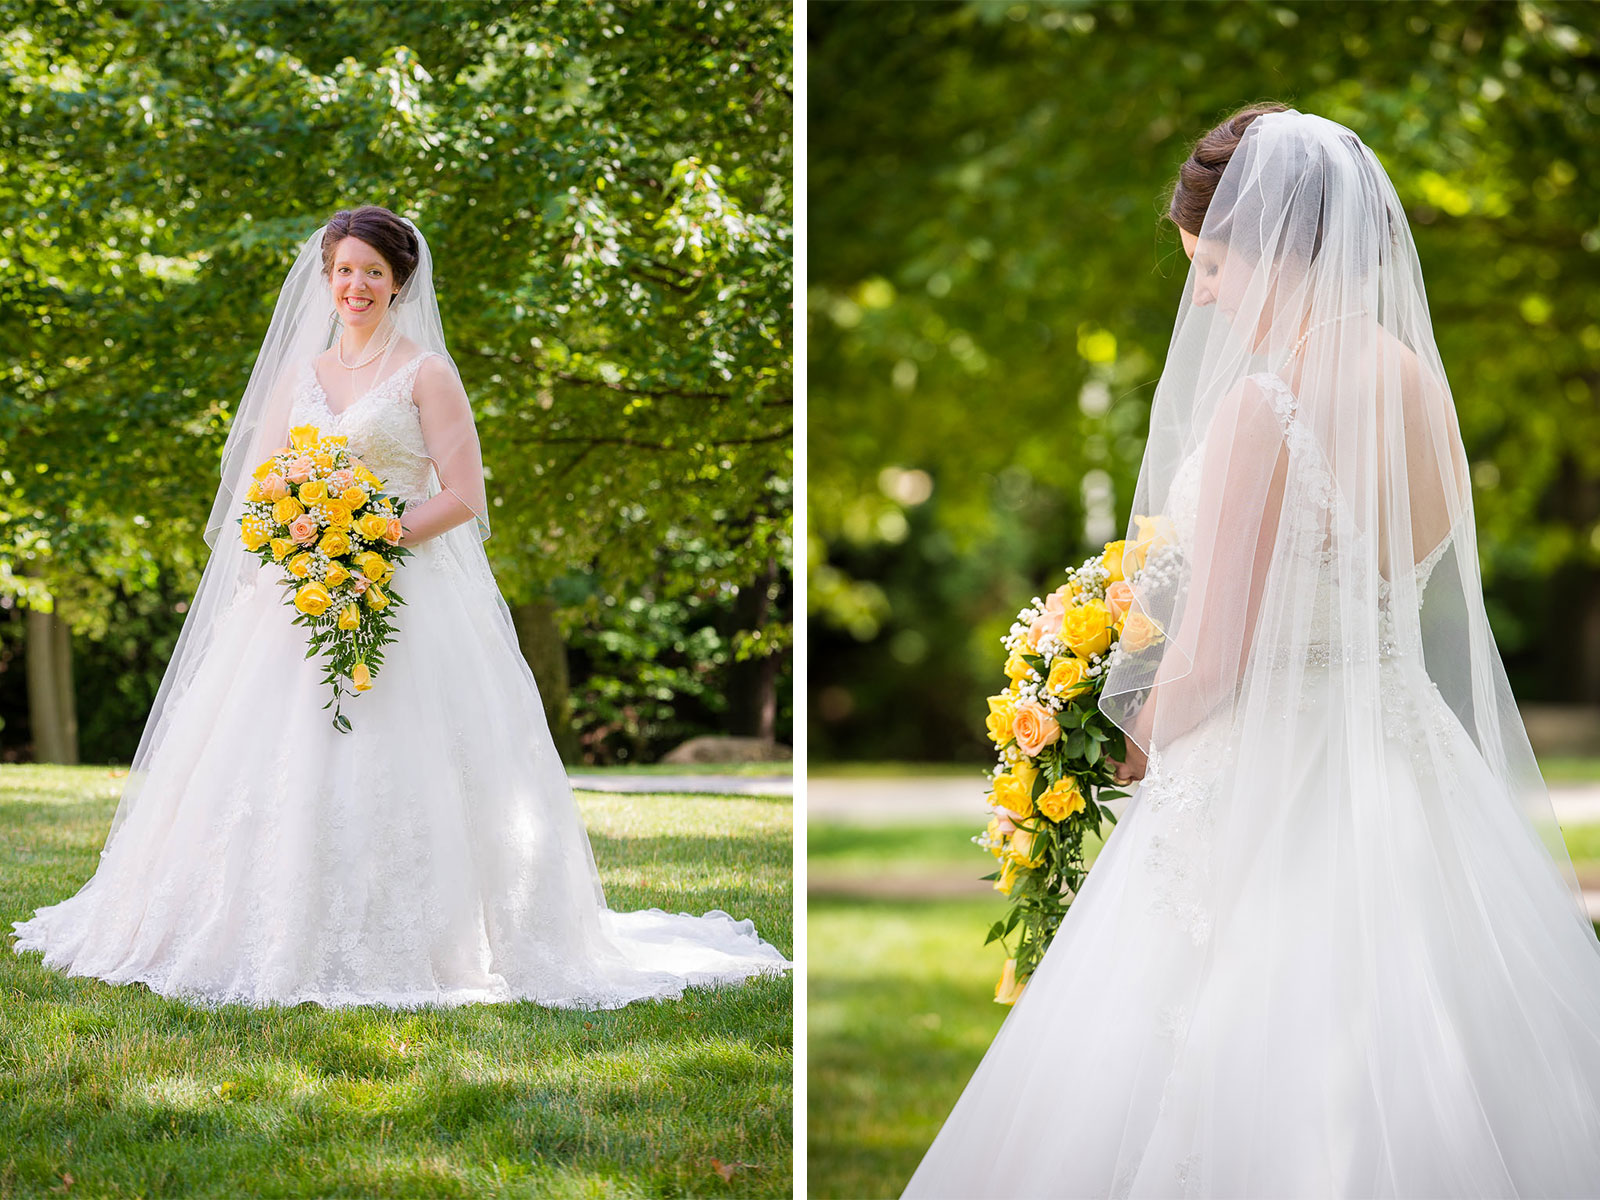 Eric_and_Christy_Photography_Blog_Wedding_Kelly_Michael-28-29